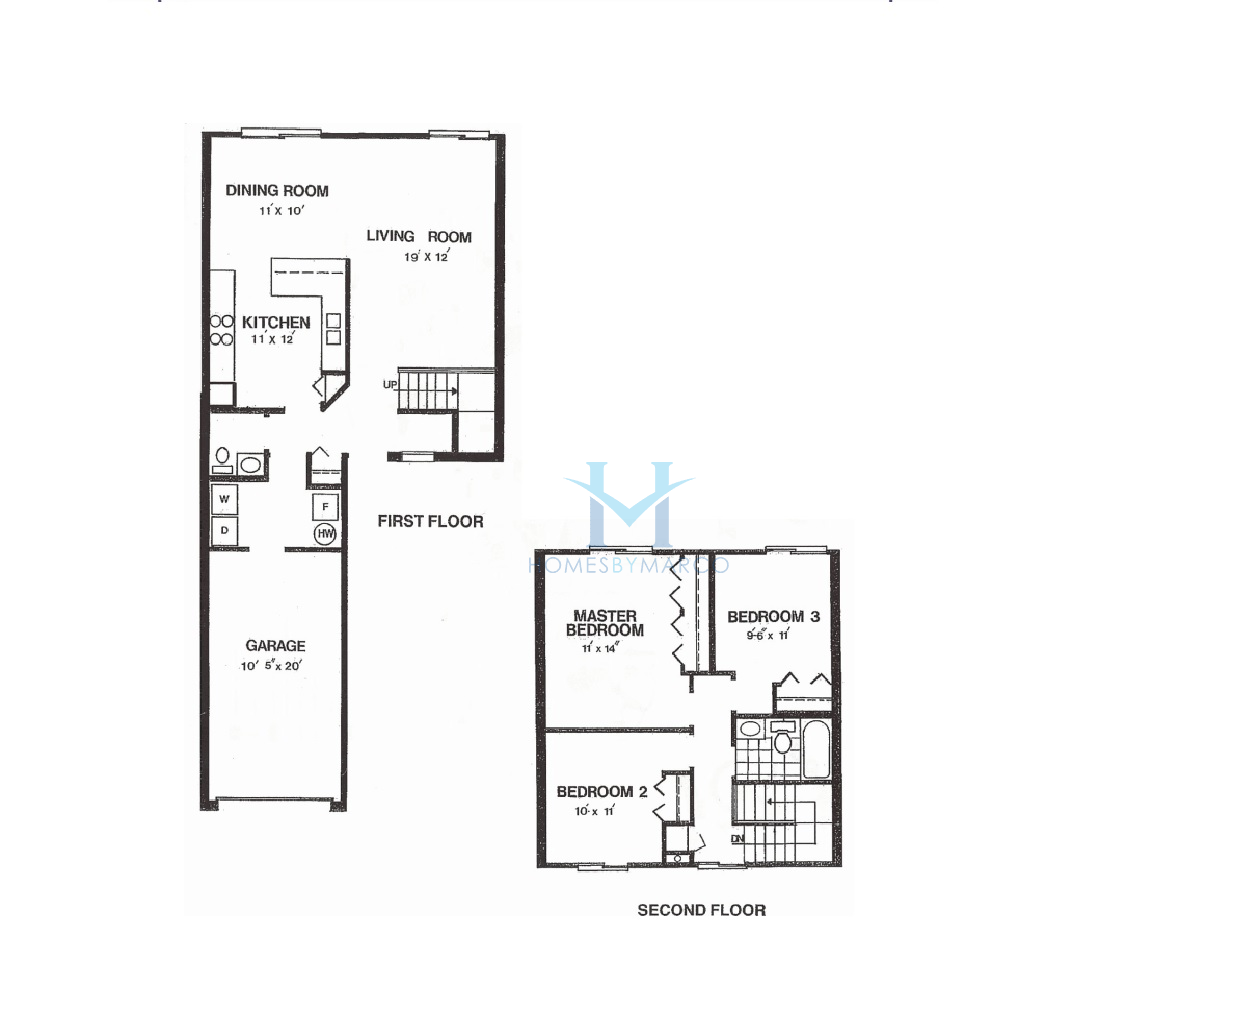 Homes By Marco Floor Plans: Hartford Model In The Sussex Square Subdivision In